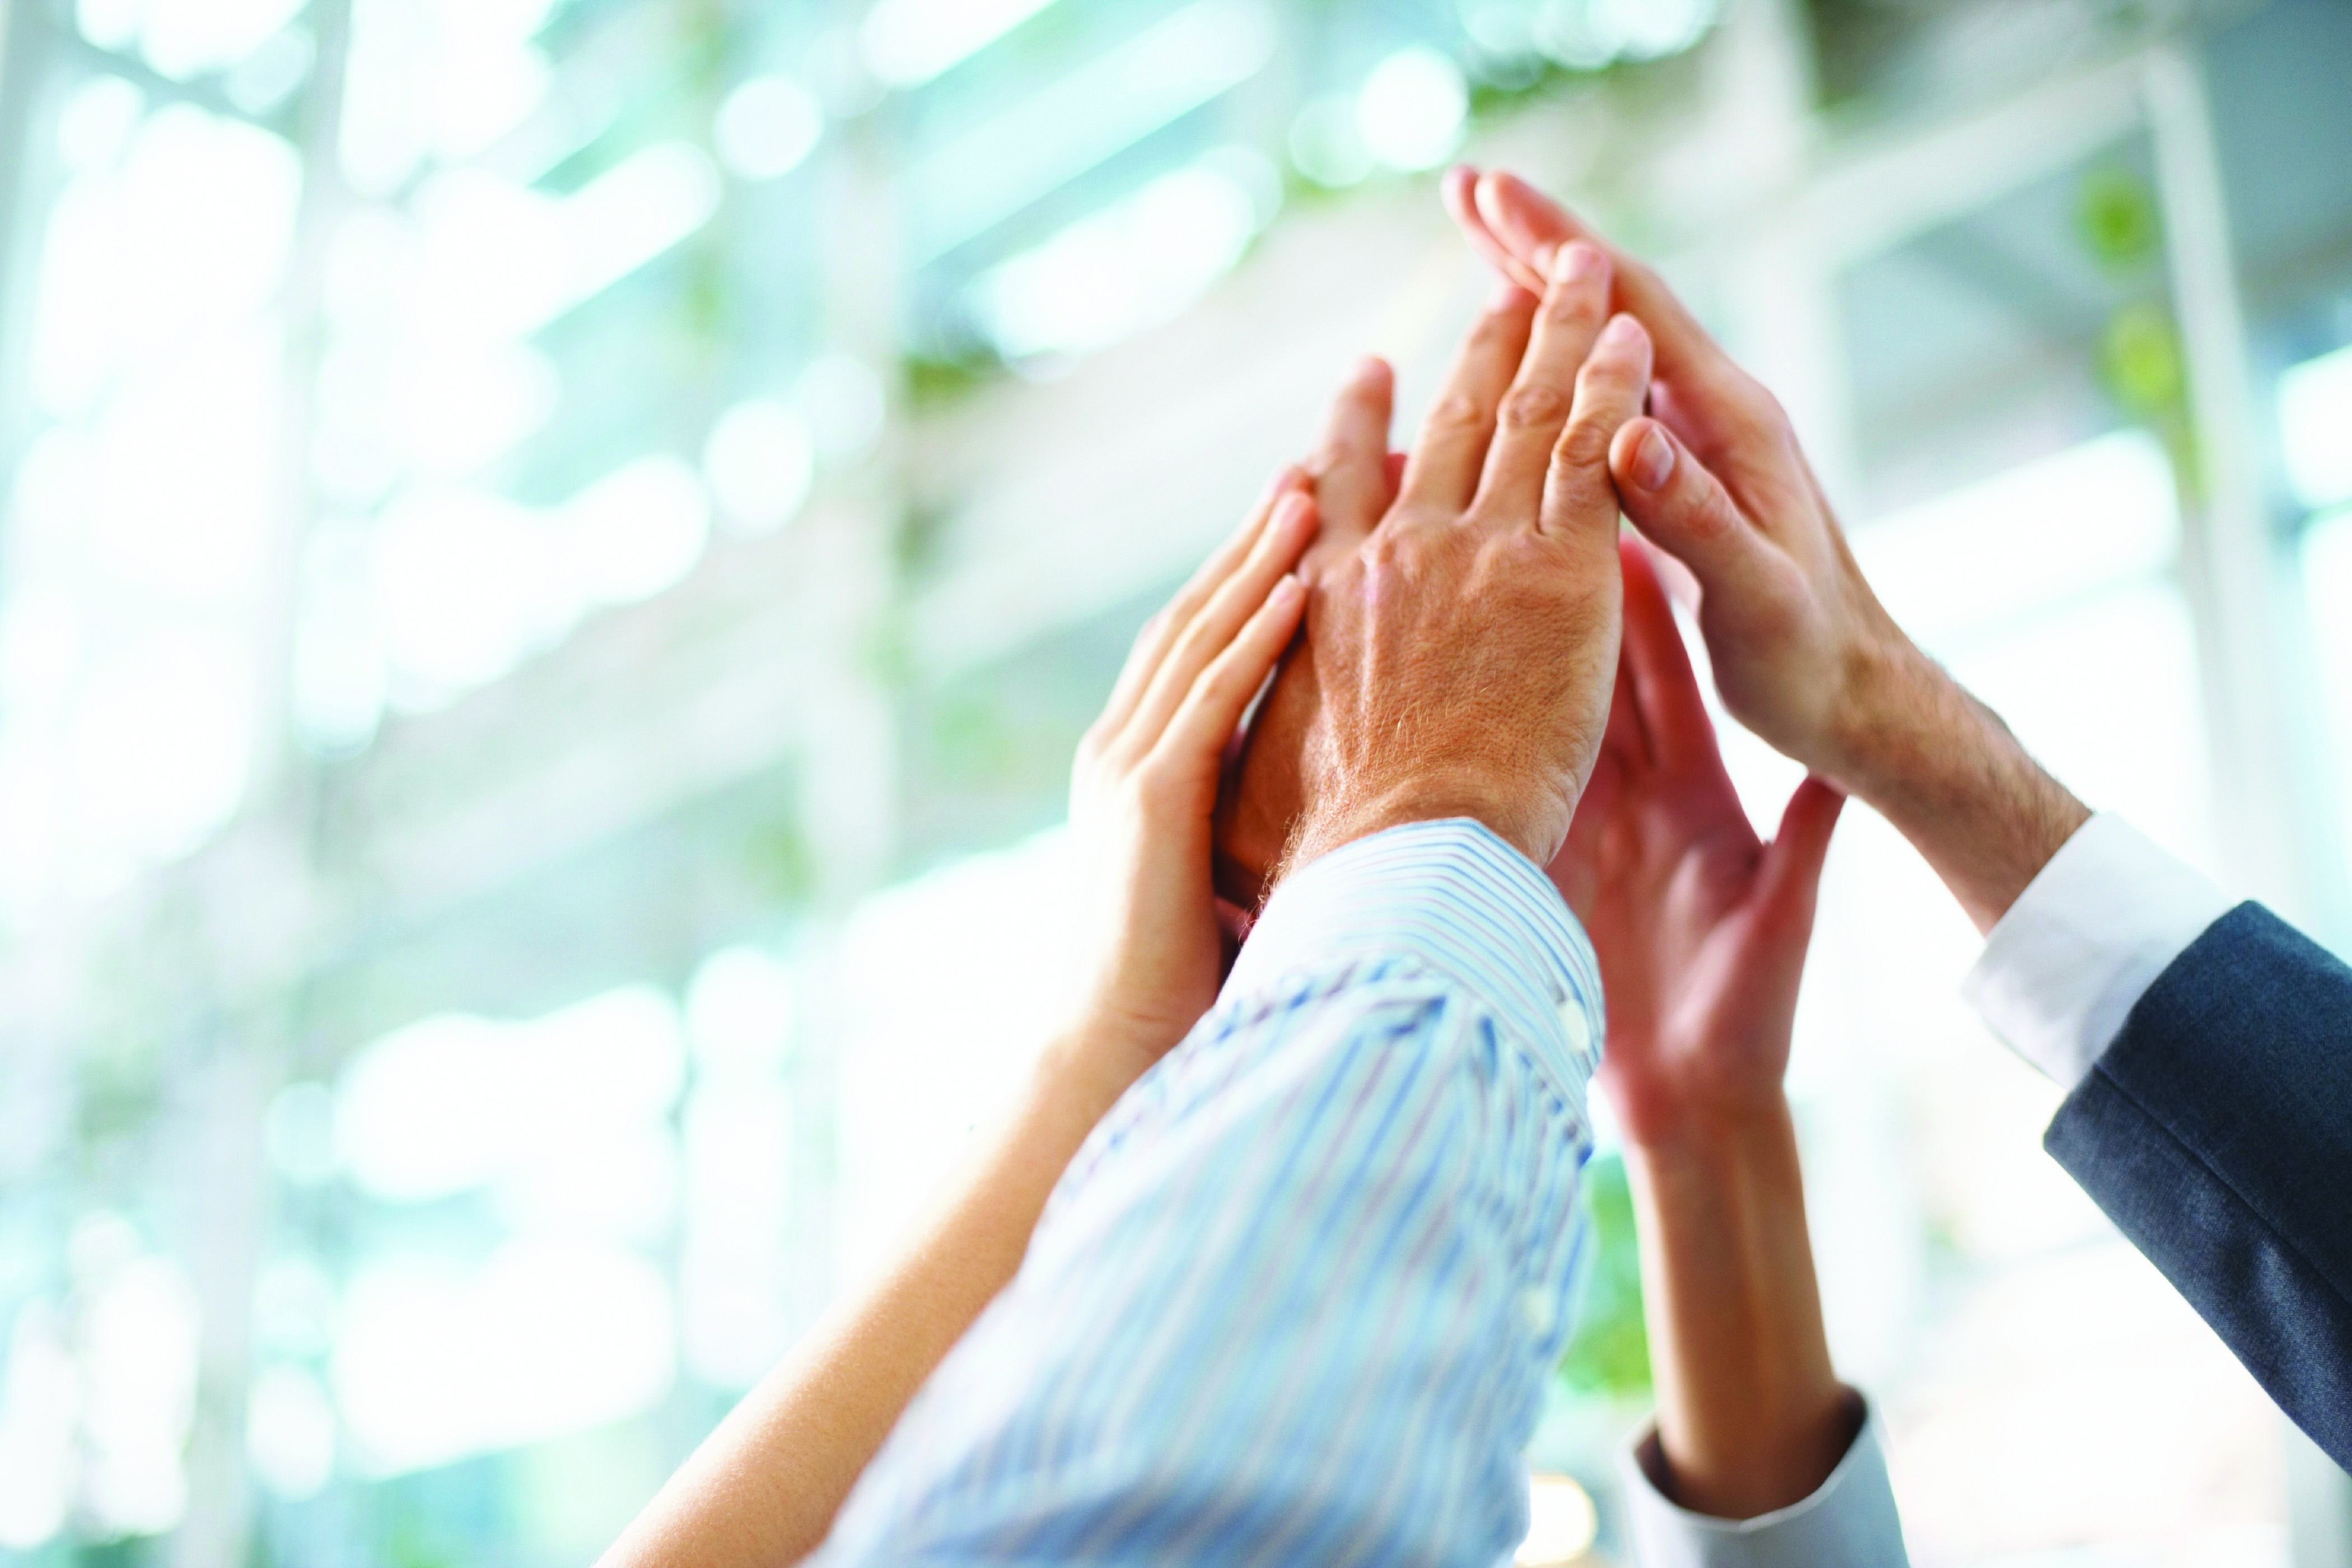 Cropped image of business people hands giving high five